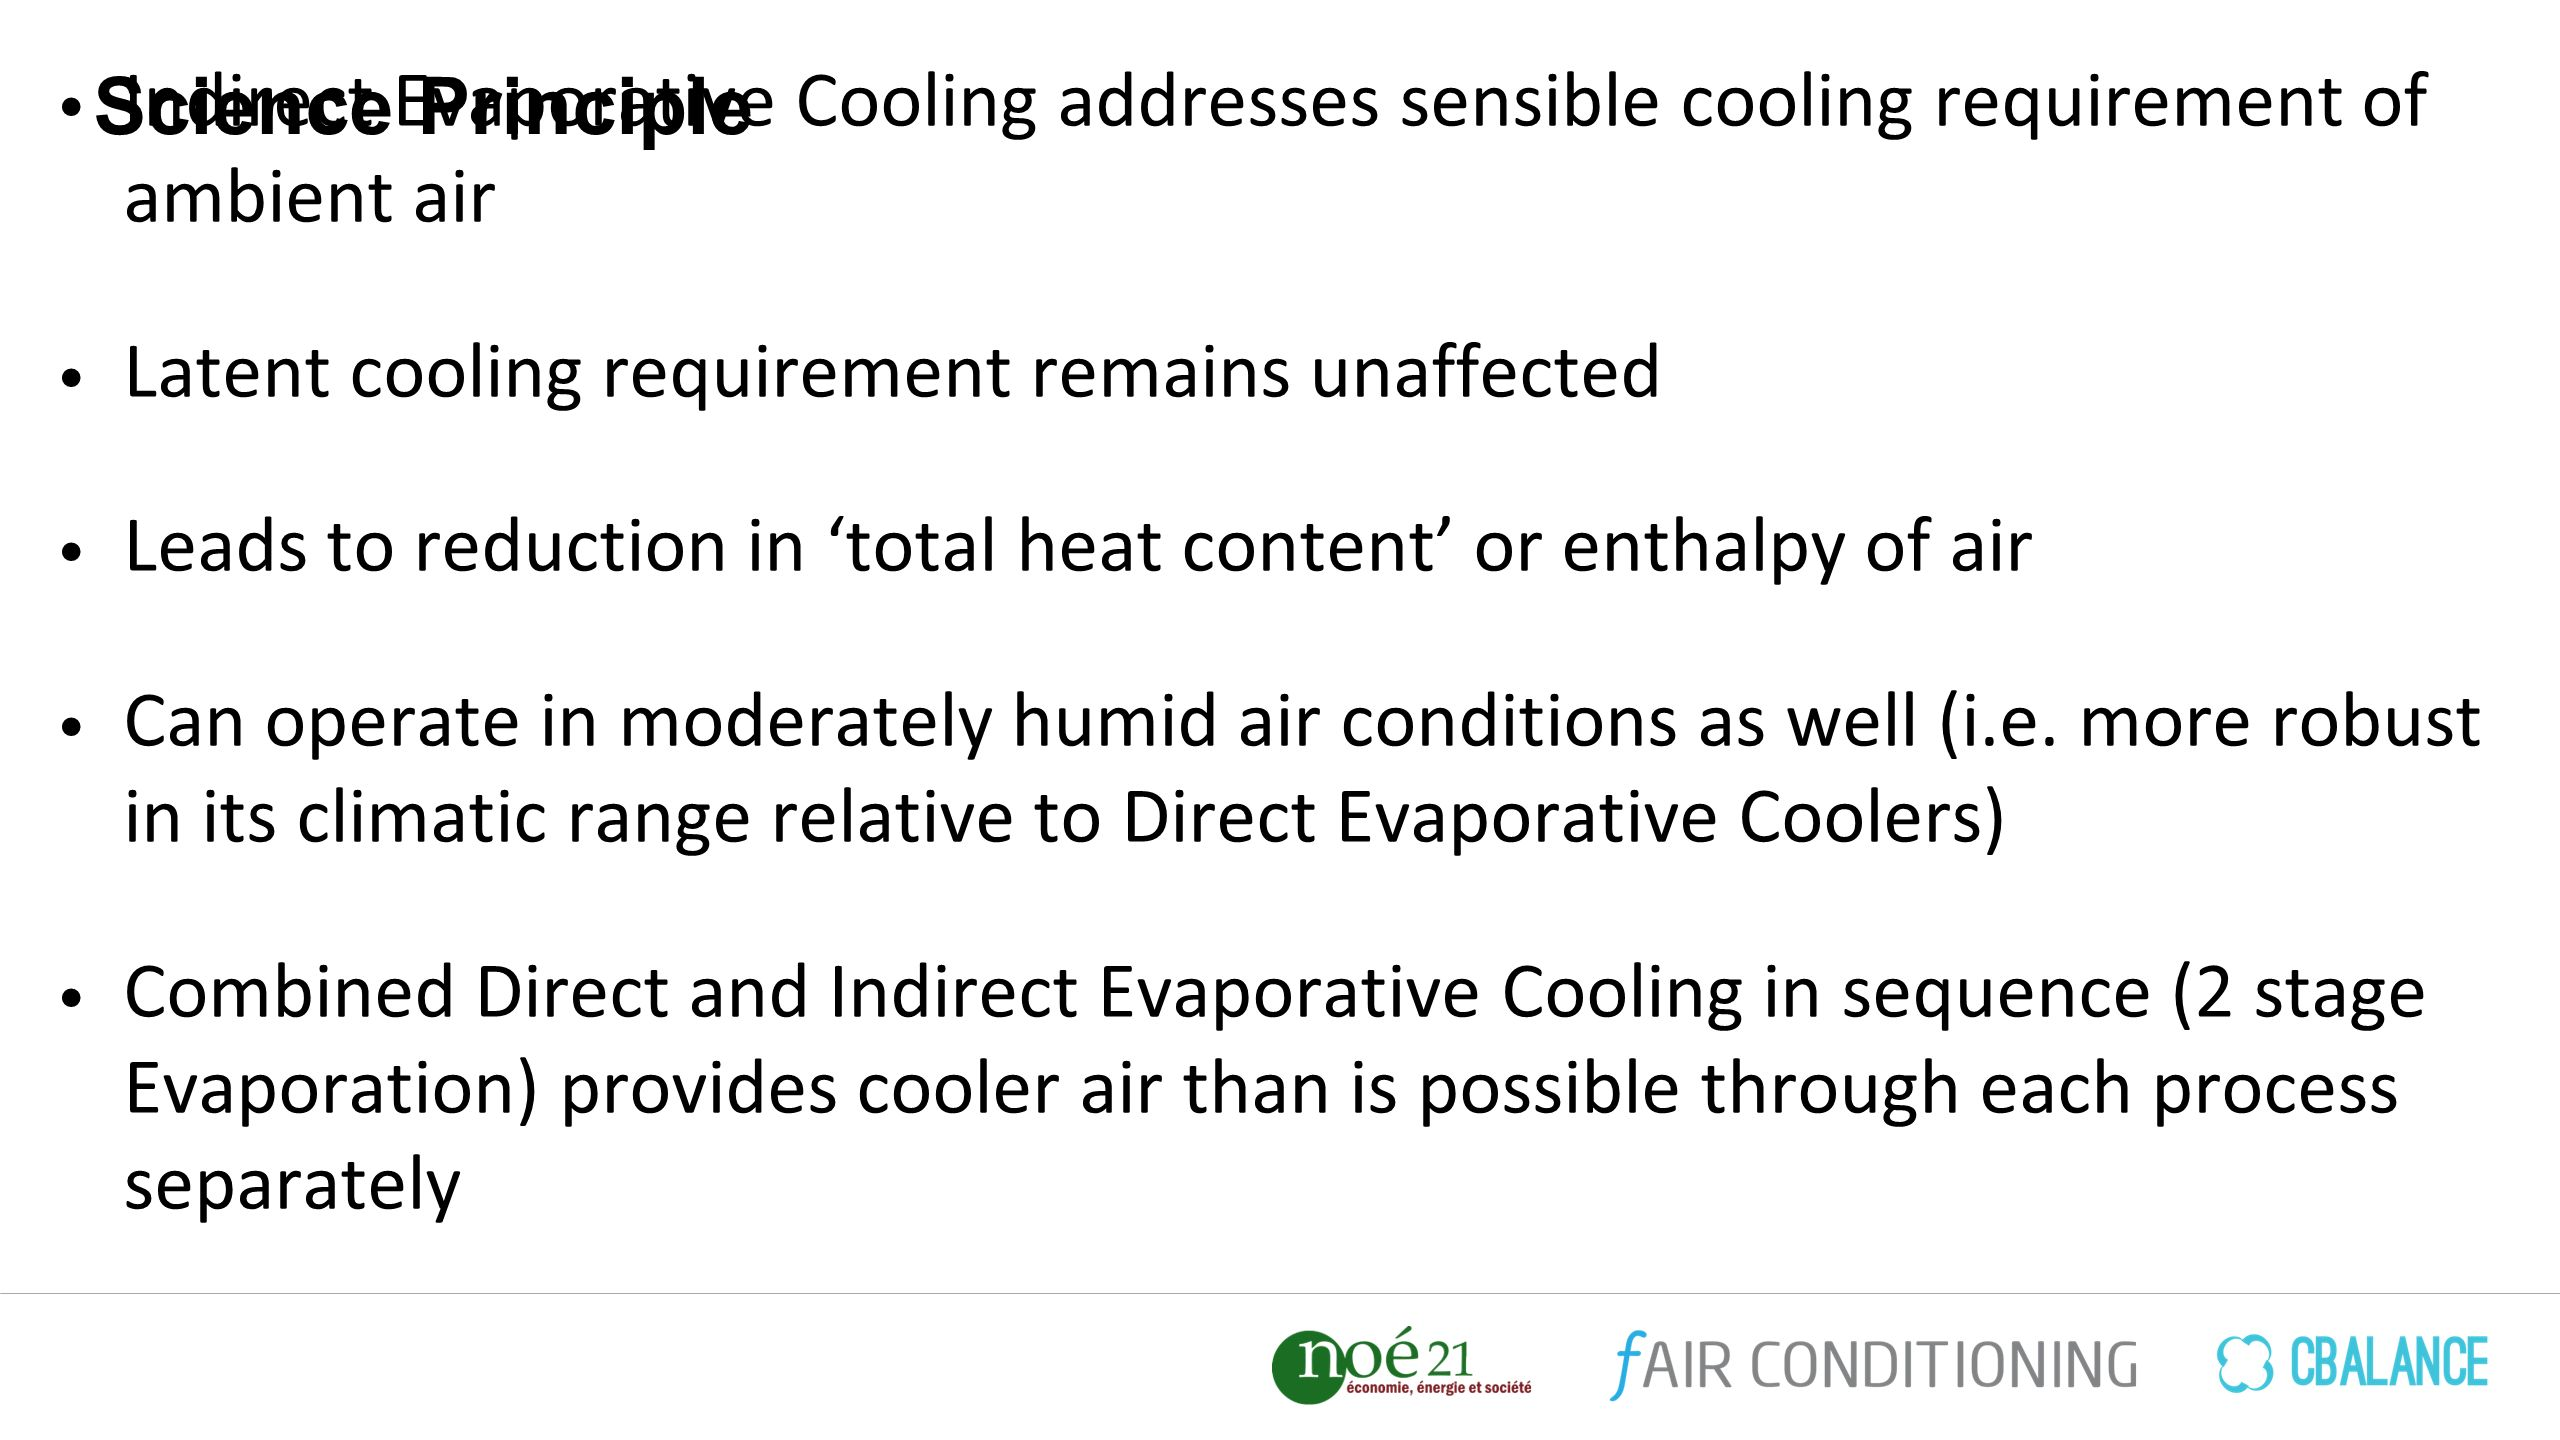 Indirect Evaporative Cooling Addresses Sensible Requirement Of Ambient Air Latent Remains Unaffected Leads